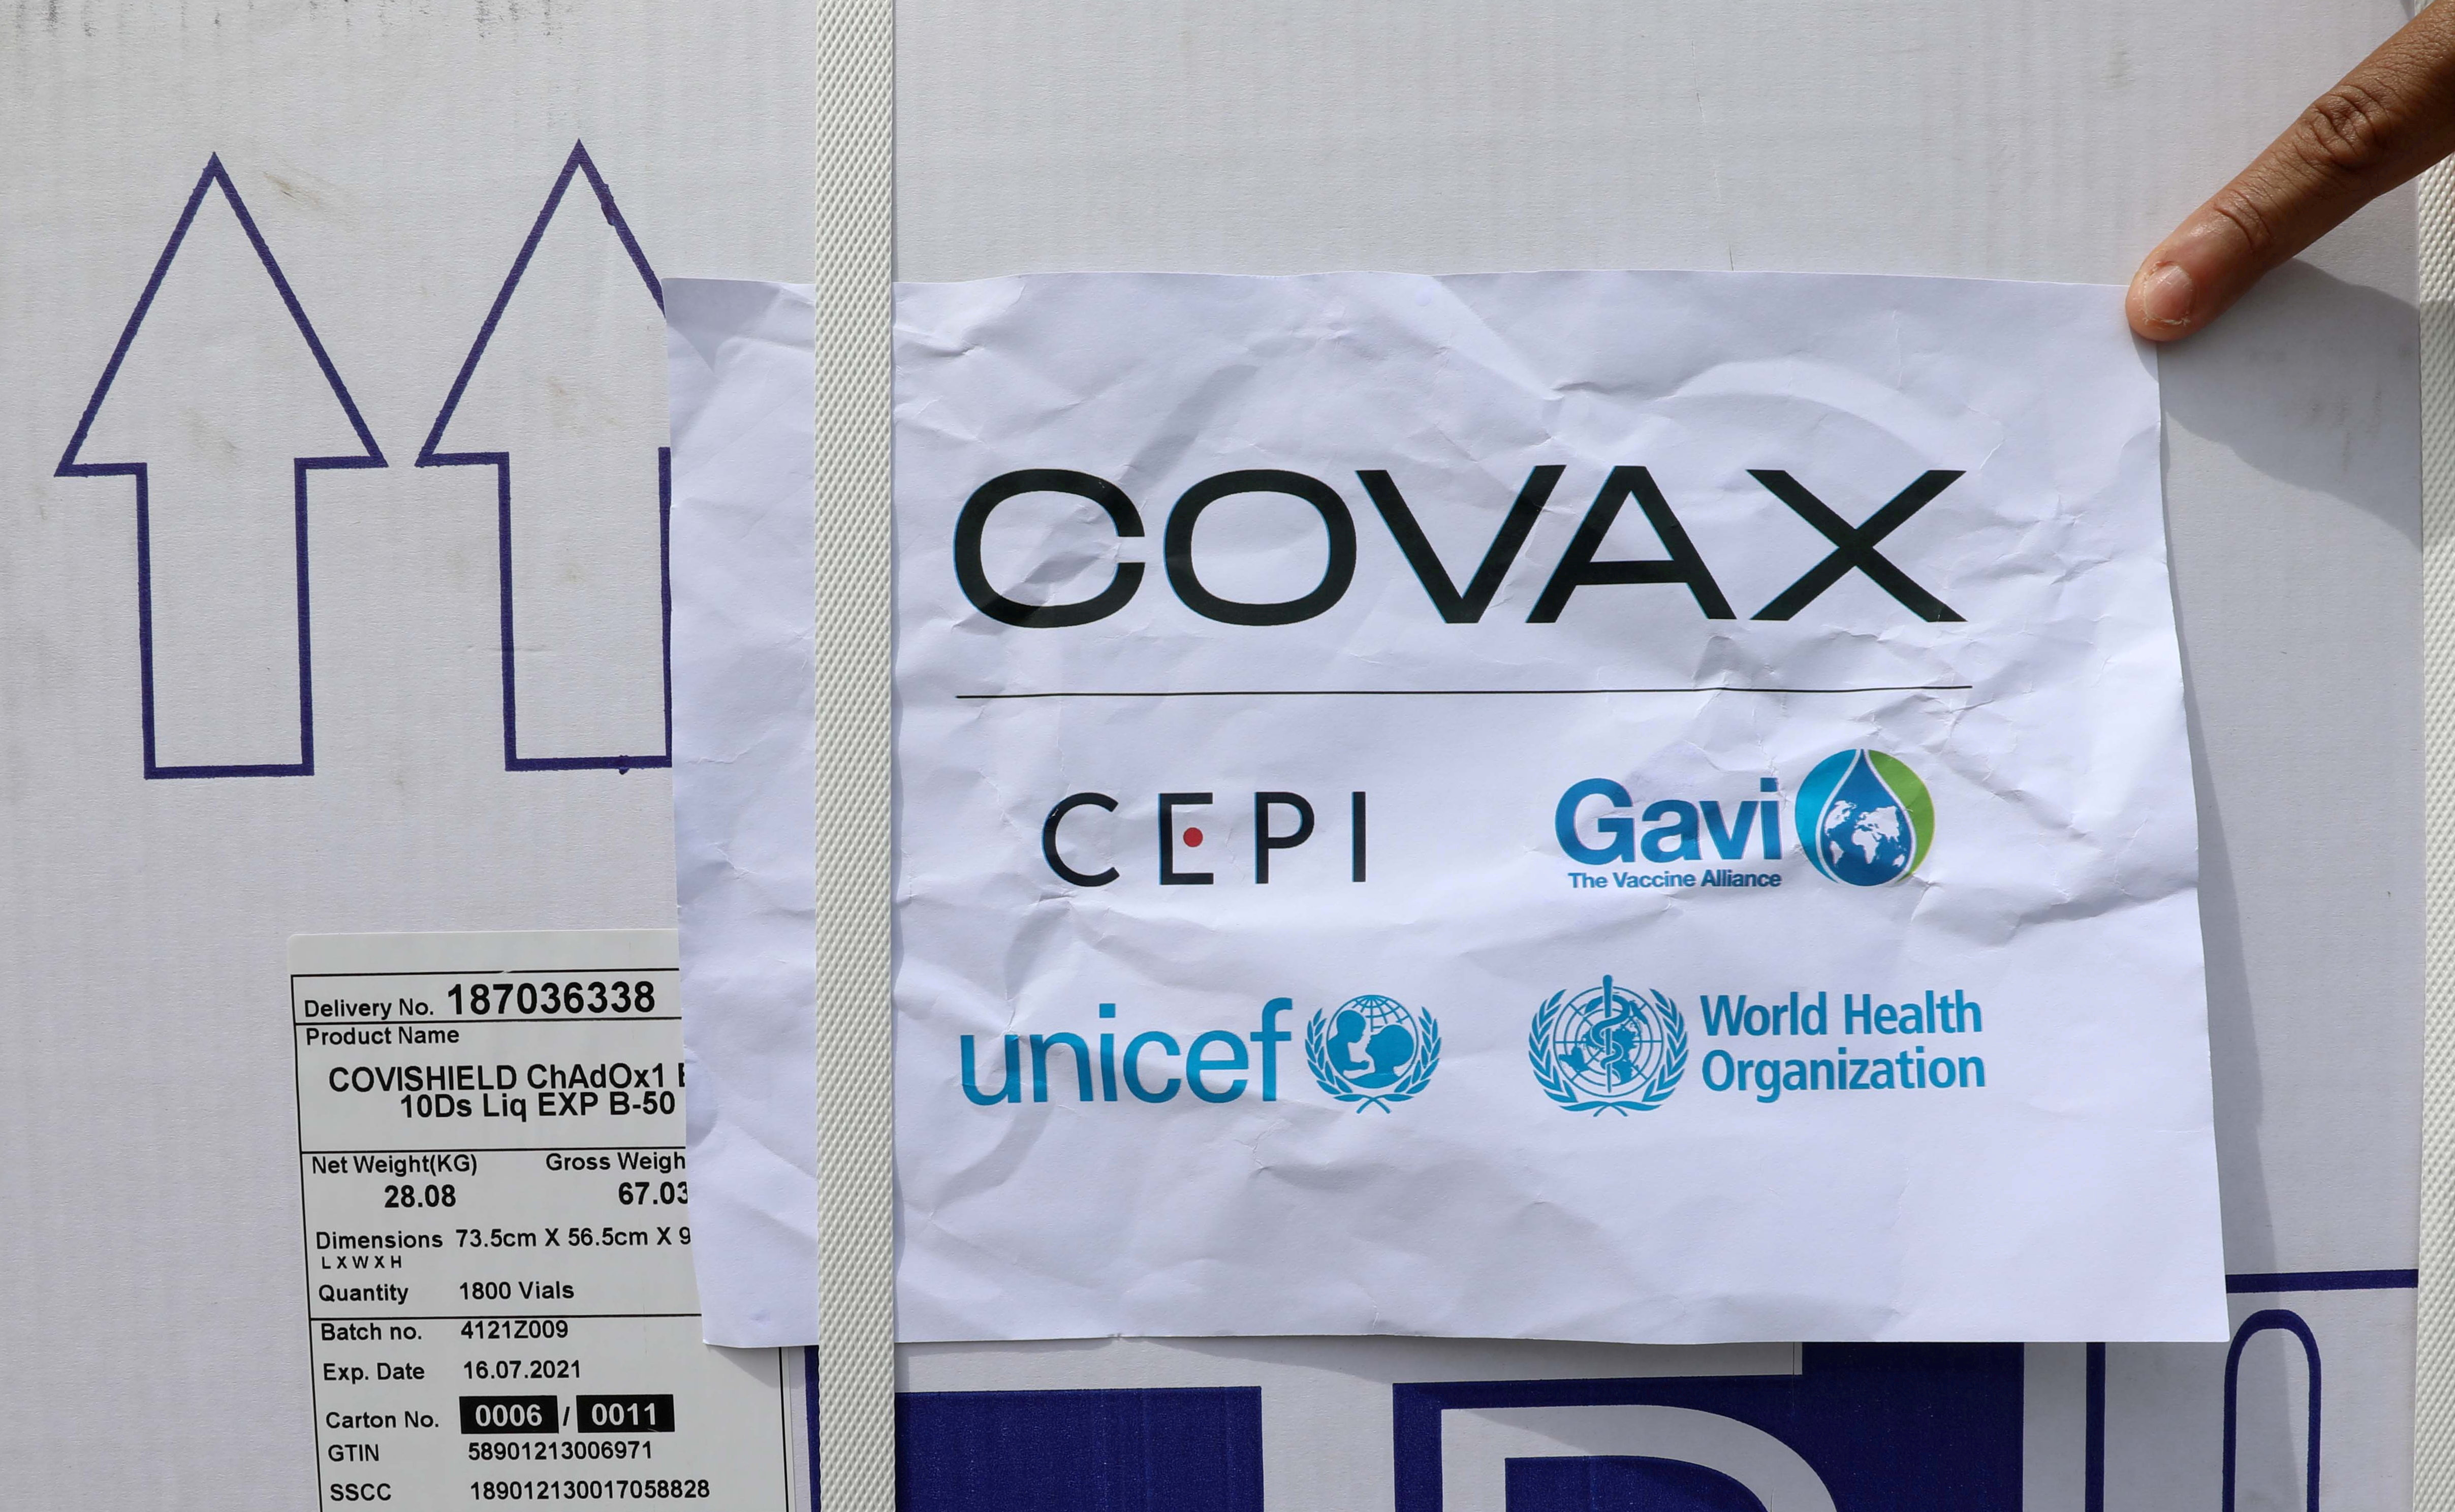 Workers offload the AstraZeneca/Oxford vaccines under the COVAX scheme against coronavirus disease (COVID-19) at the Aden Abdulle Osman Airport in Mogadishu, Somalia March 15, 2021. REUTERS/Feisal Omar